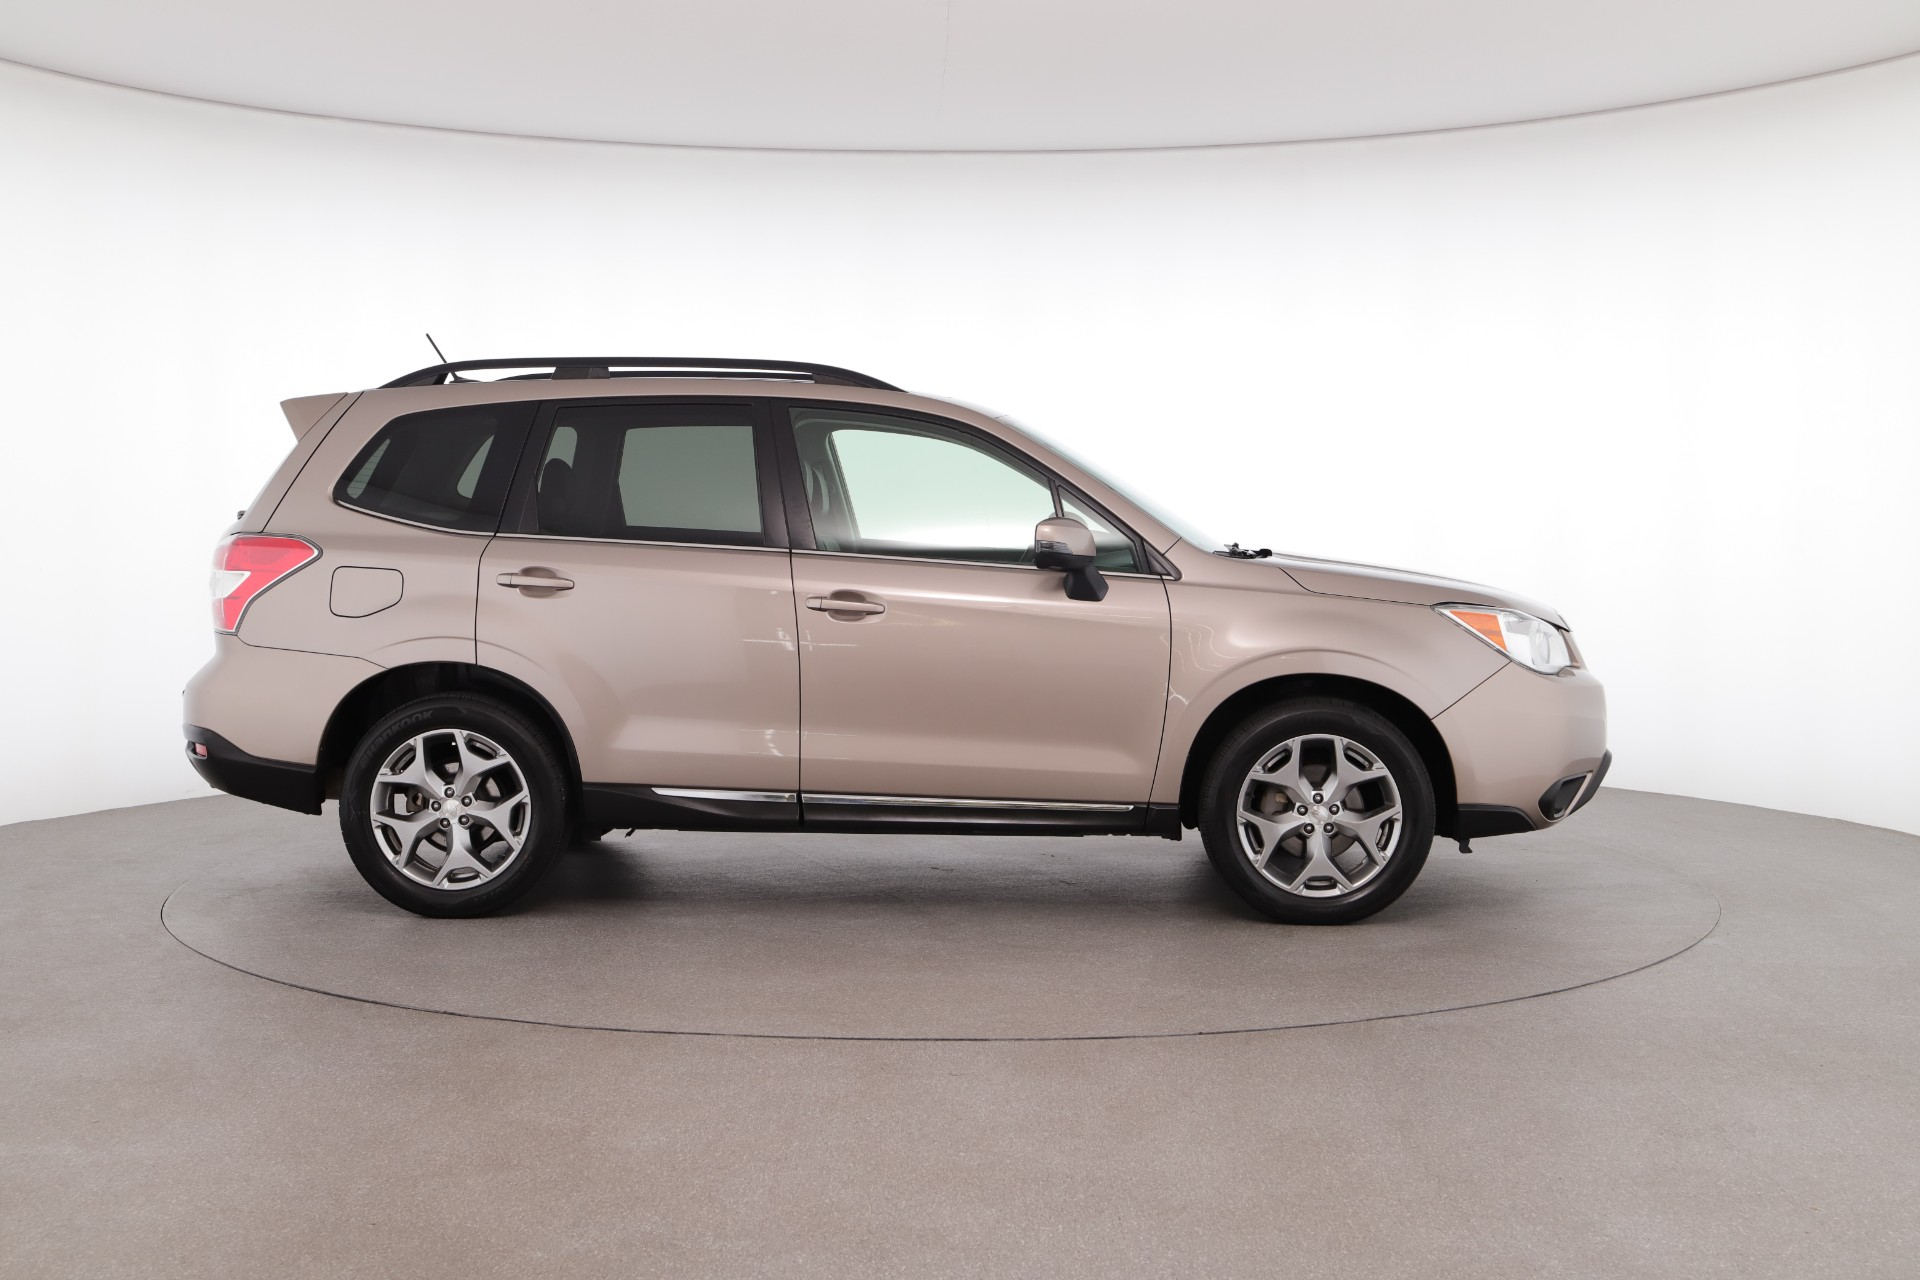 Subaru Forester 2.5i Touring (from $19,300)